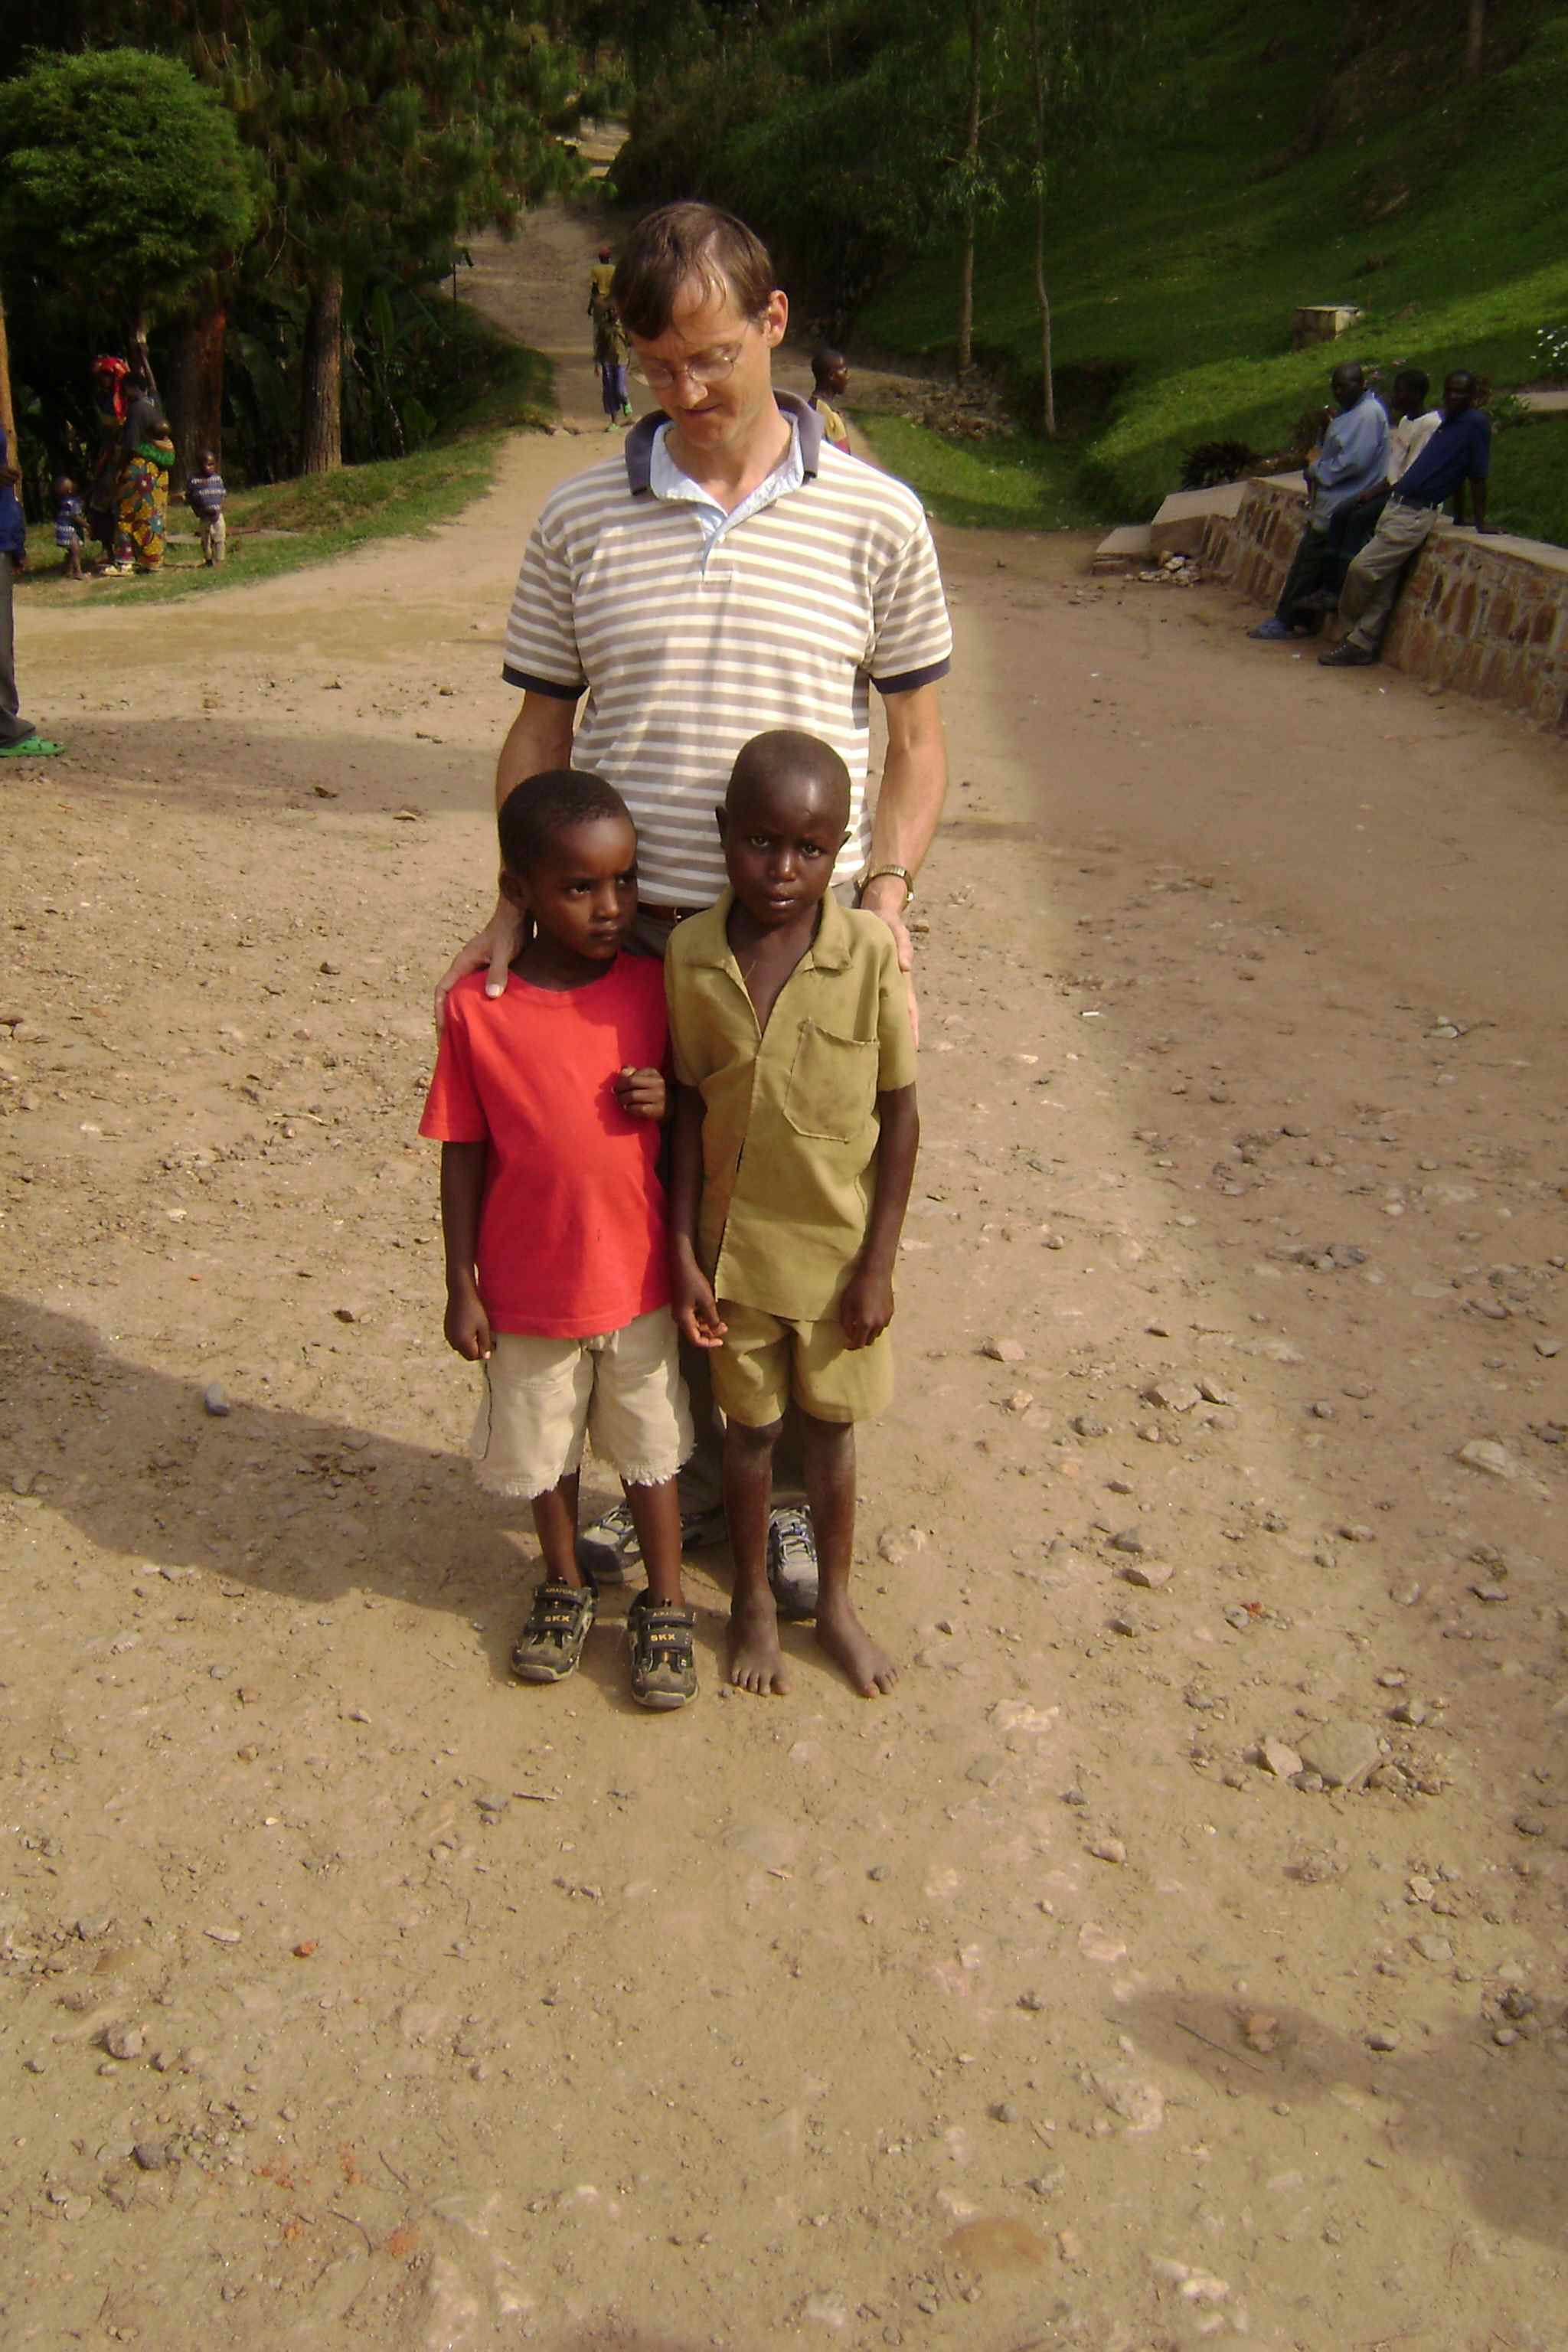 Hakizimana, in the Khaki, is 13; Moses, in red, is 5